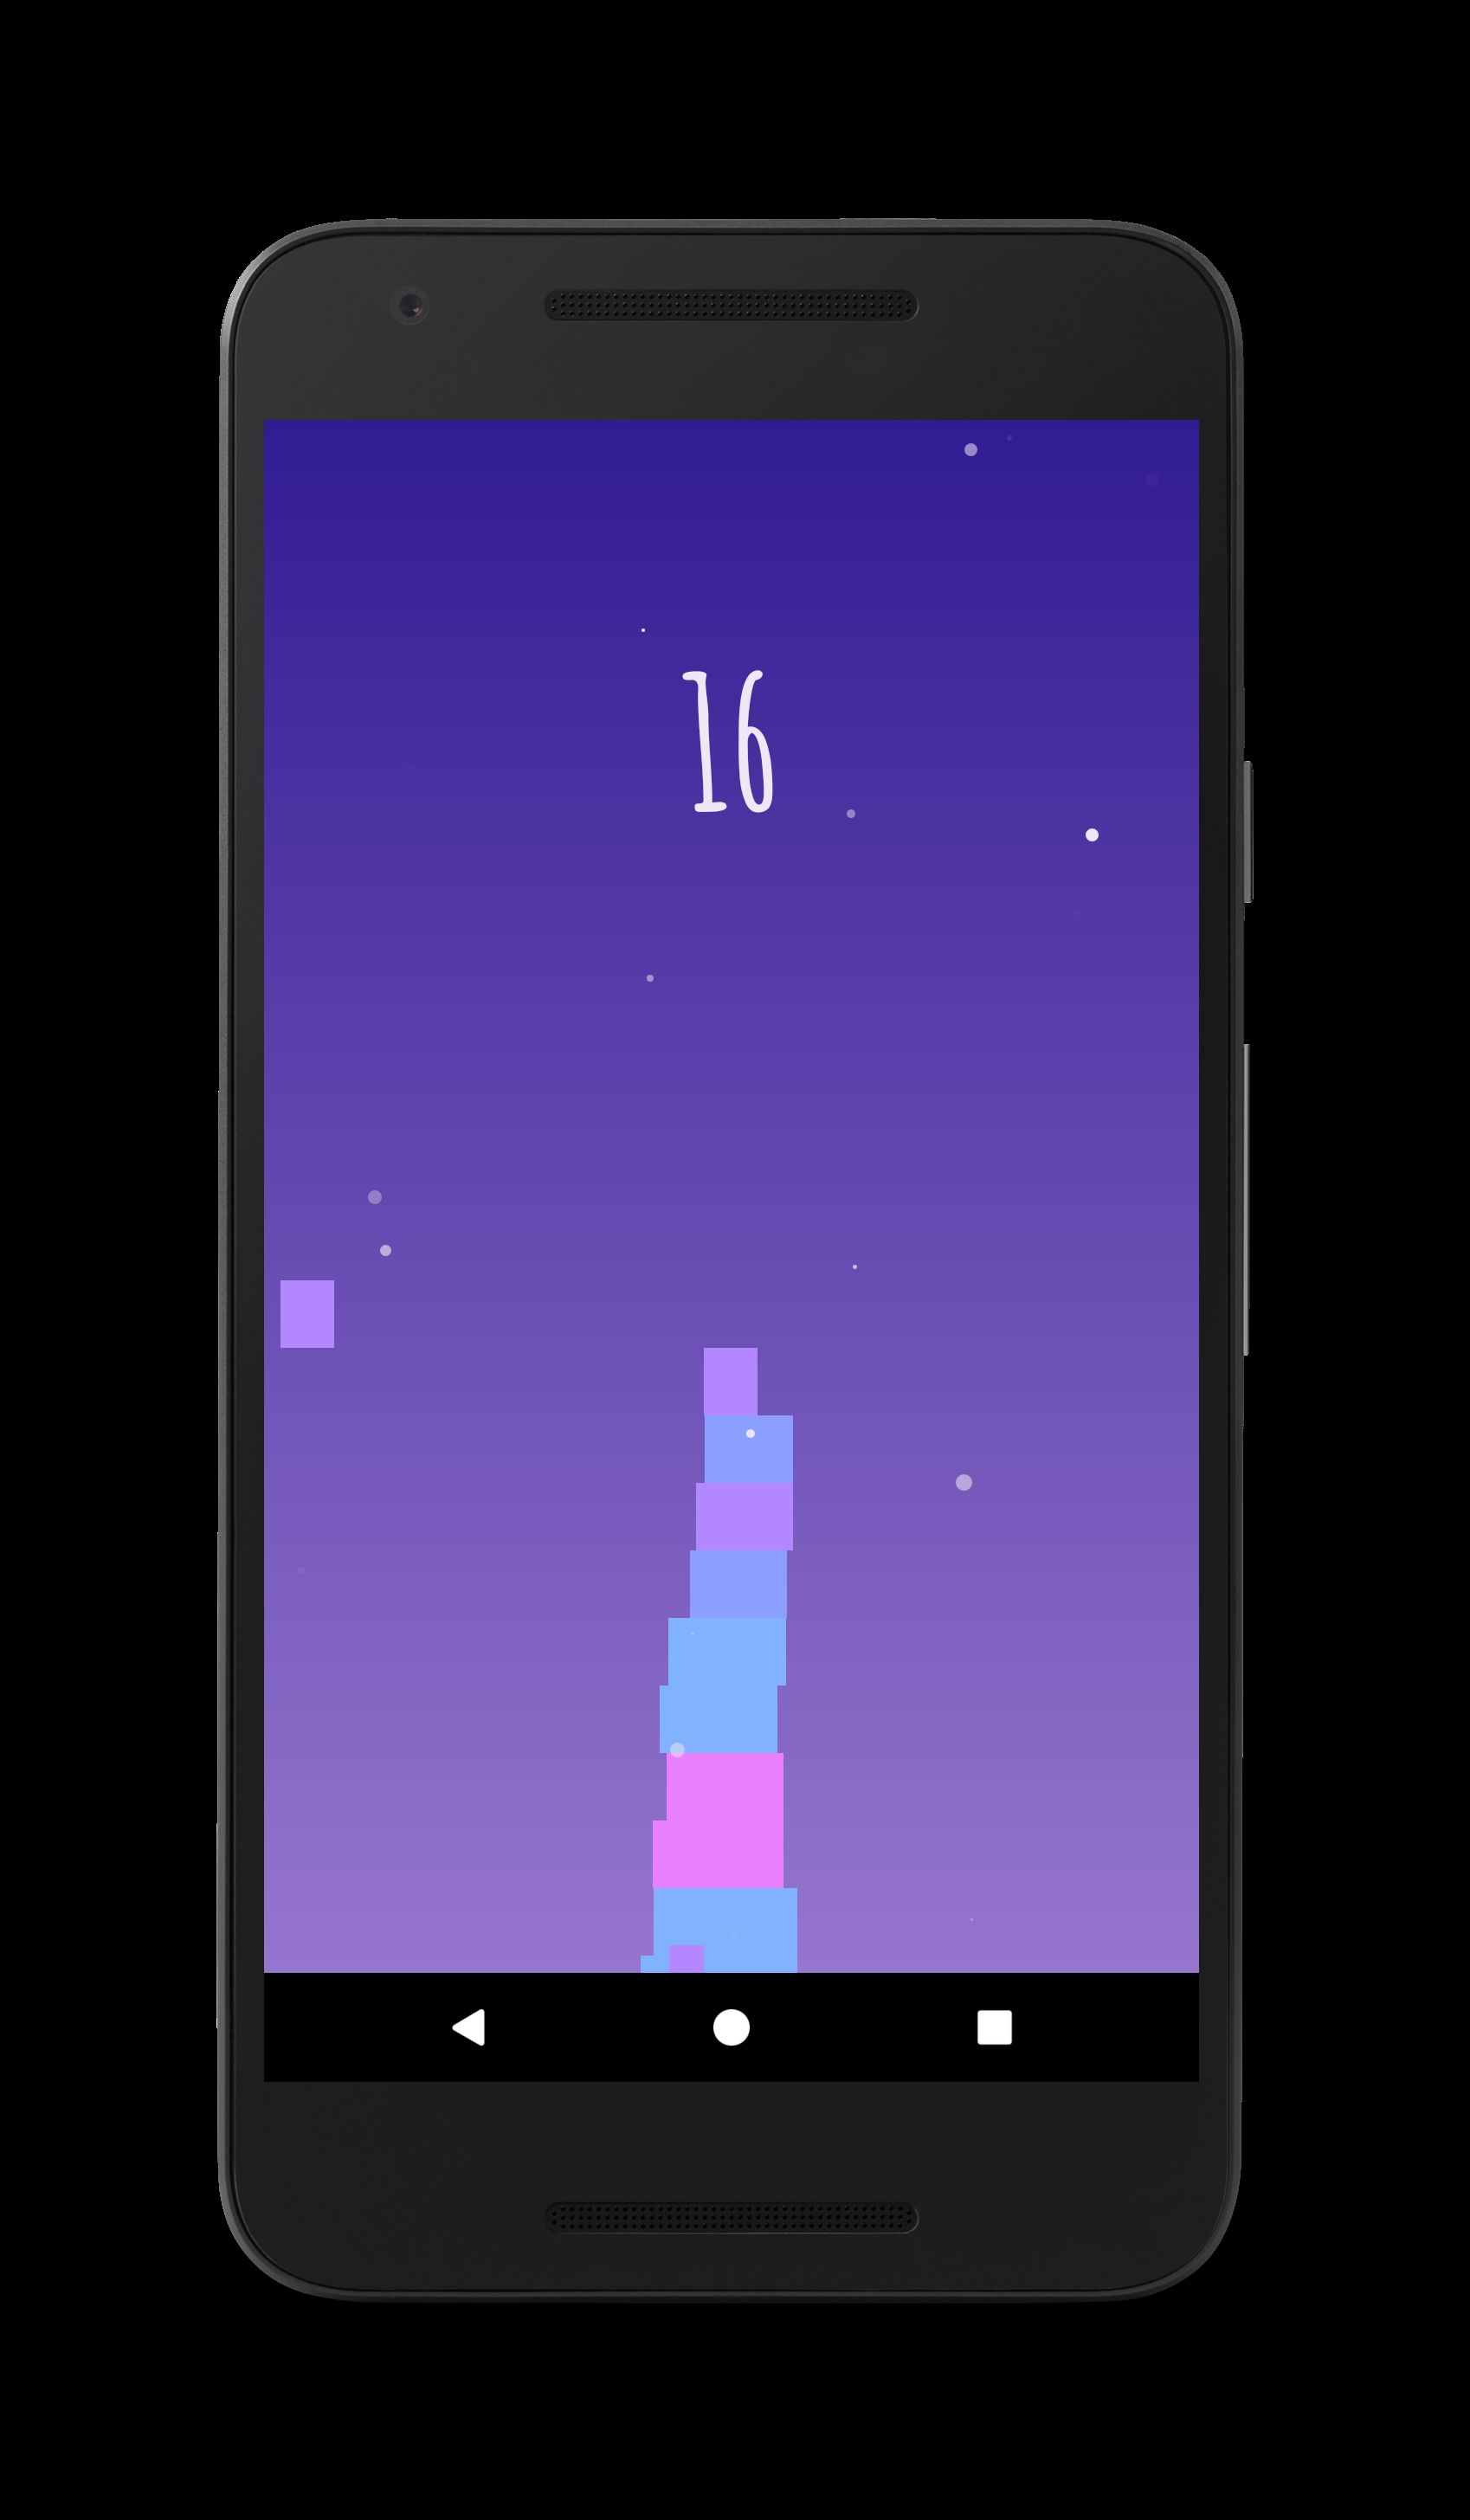 Tall Tower - Android Game Source Code Screenshot 2